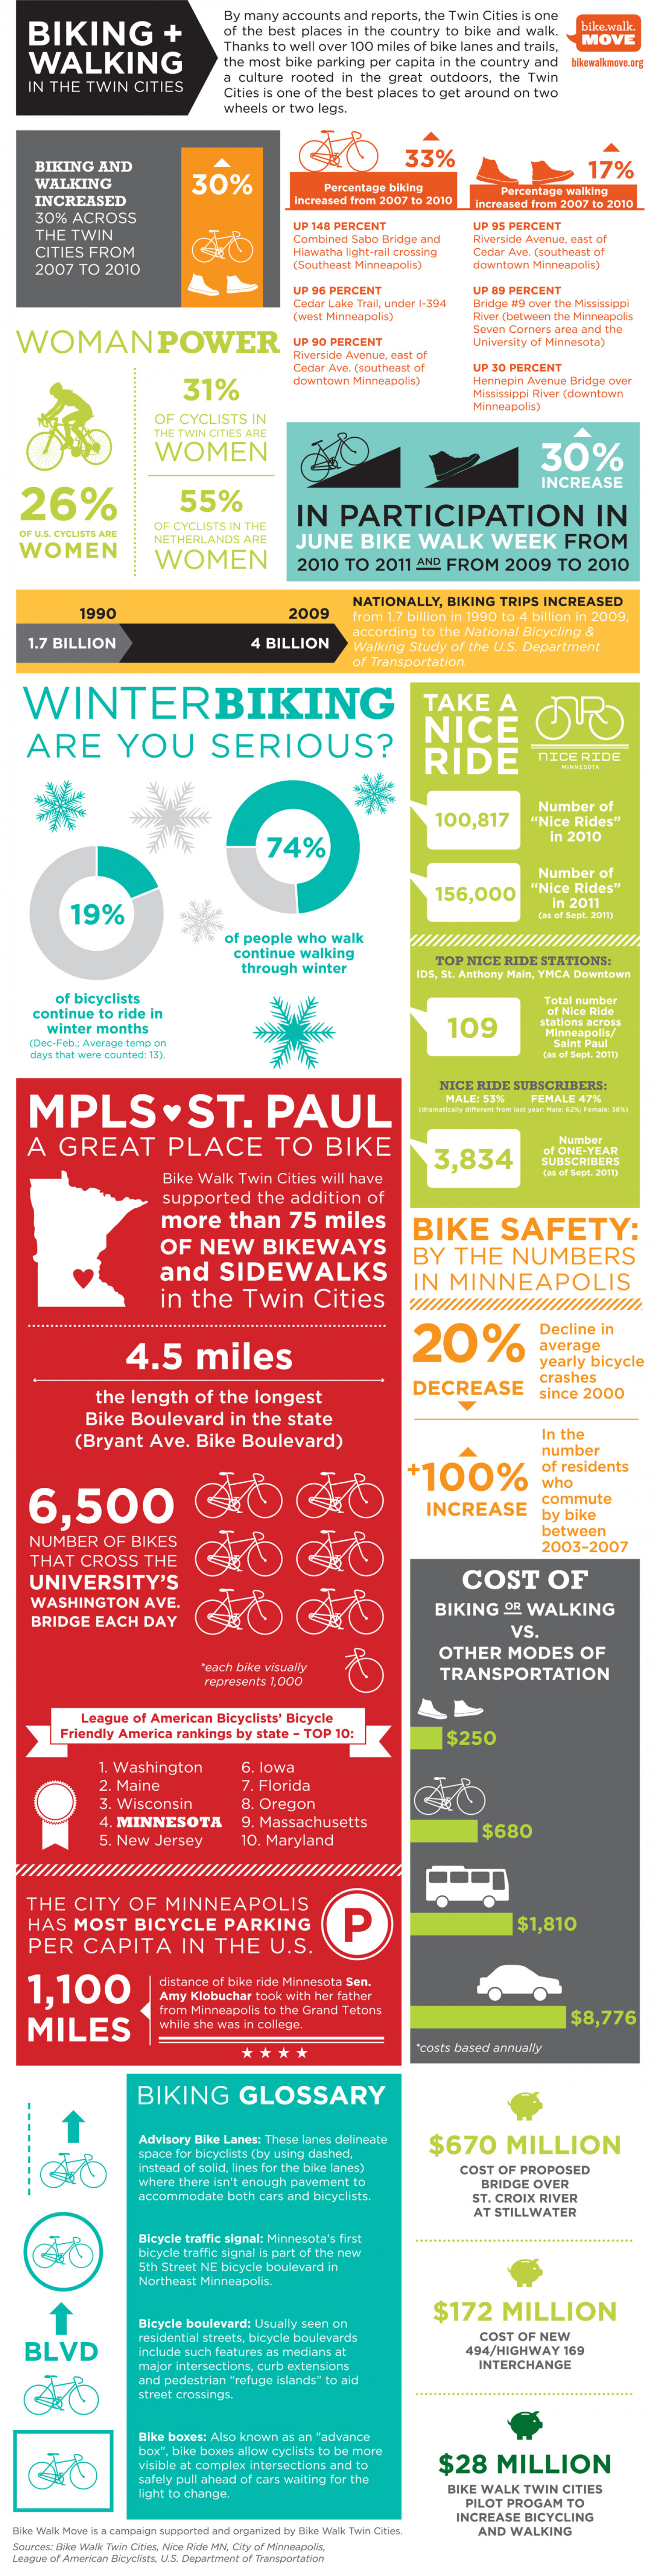 Infographic highlights biking, walking in Twin Cities Infographic